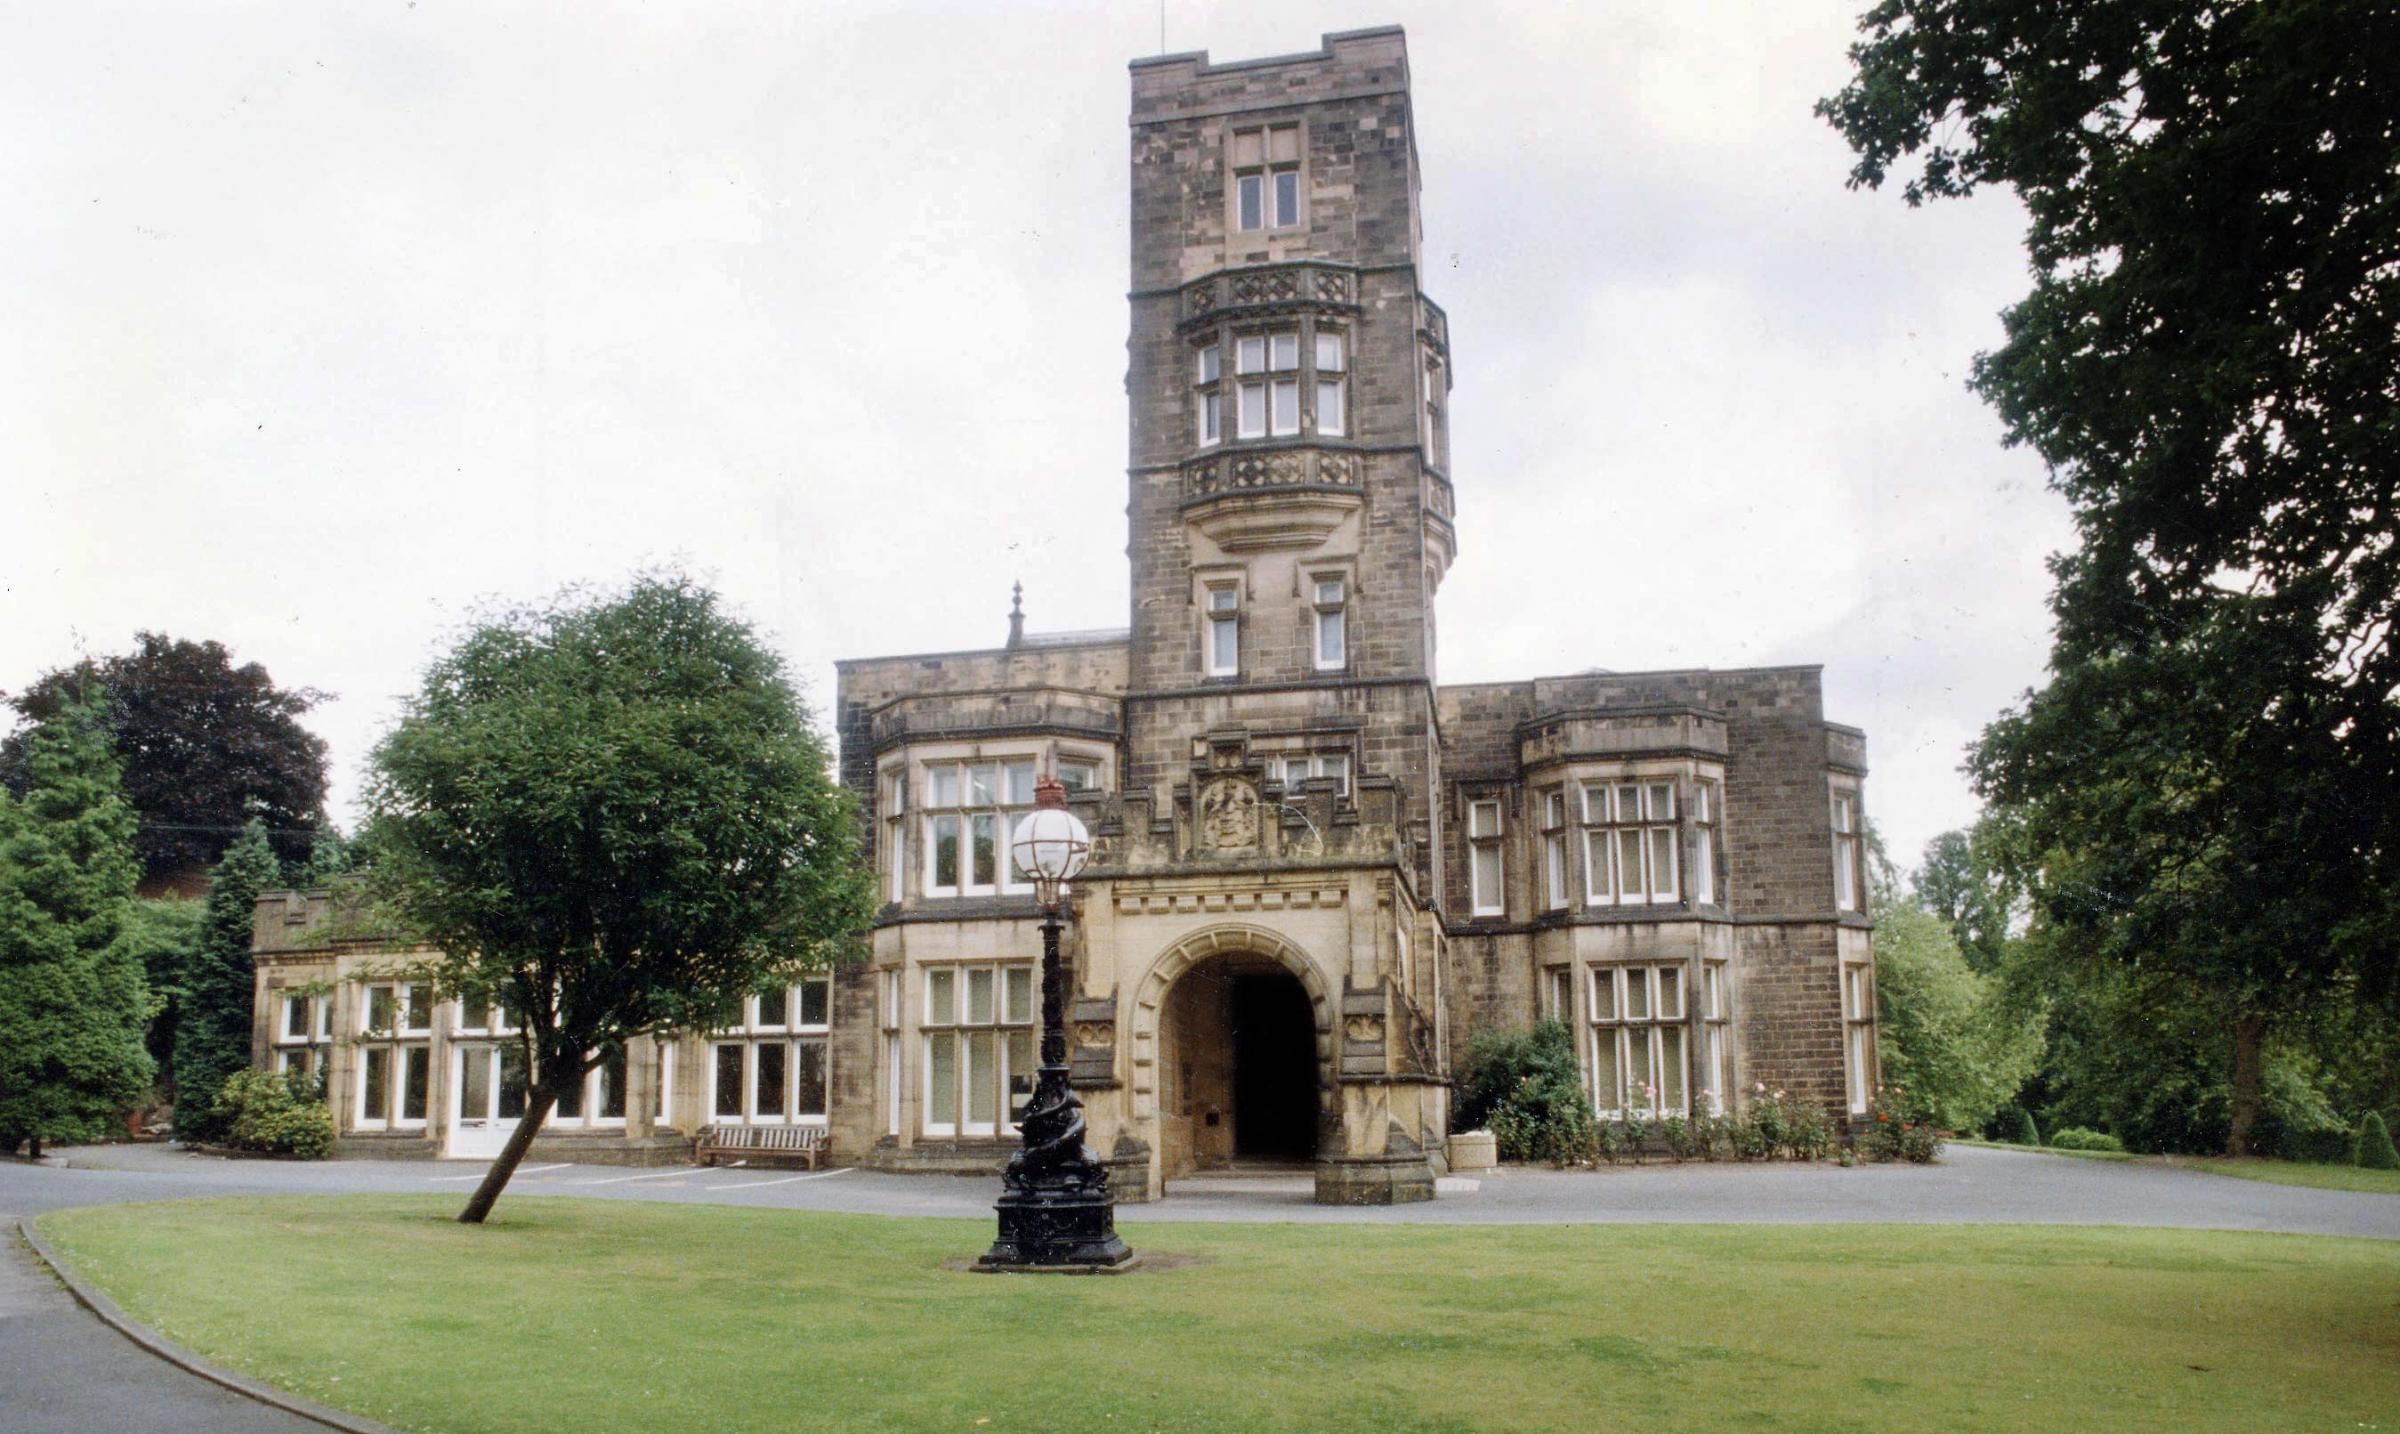 Cliffe Castle Museum and Park in Keighley